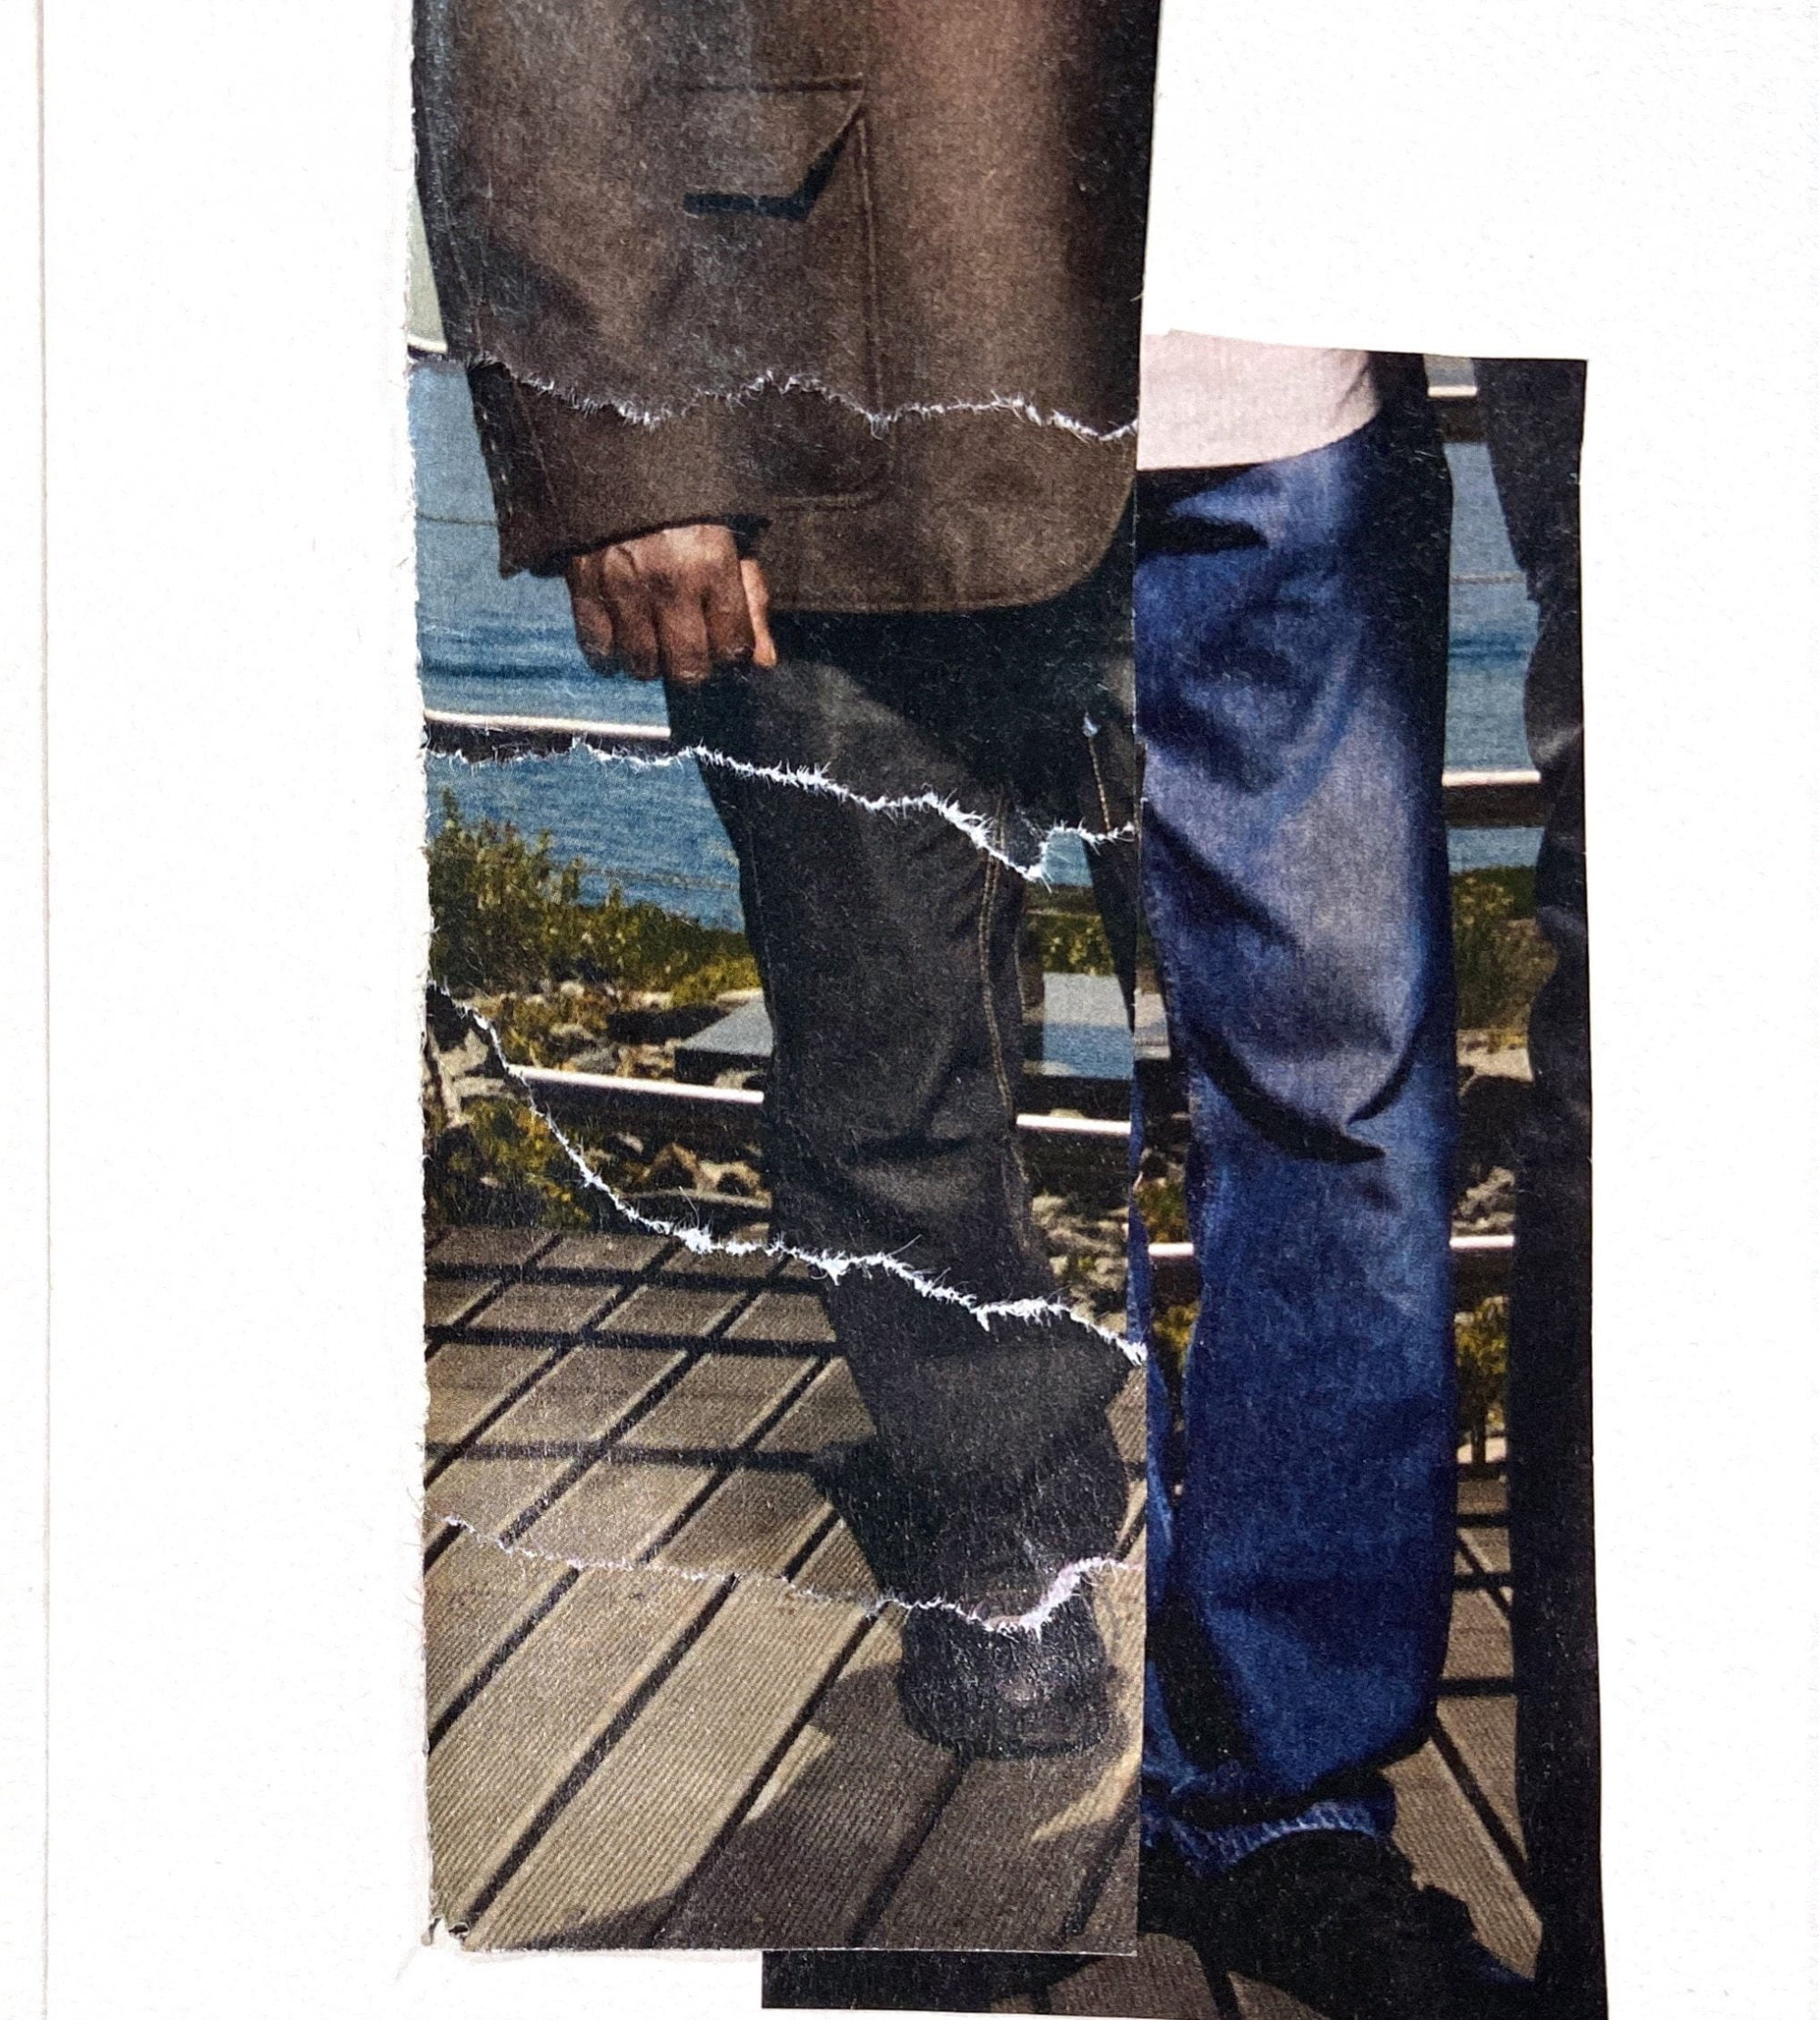 A photo collage of the lower half of a man on decking or a boardwalk, disrupted so that the legs are separate, wearing a different colour of jeans to the other, and rips seeming to appear across the rest of his body and clothing.